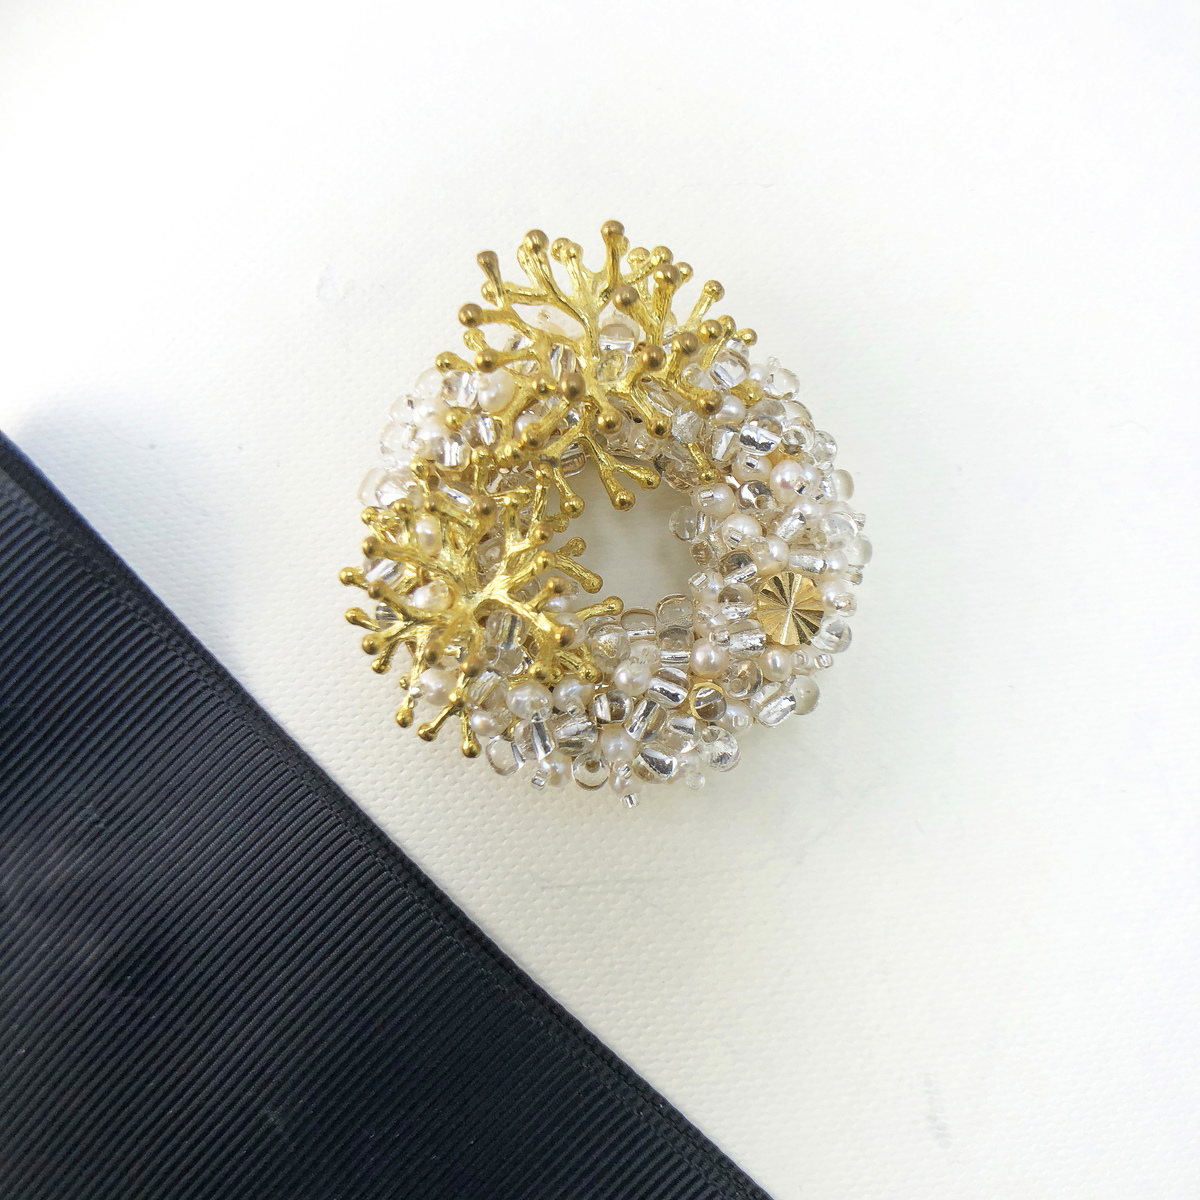 Exquisite - Japanese Style Brooch